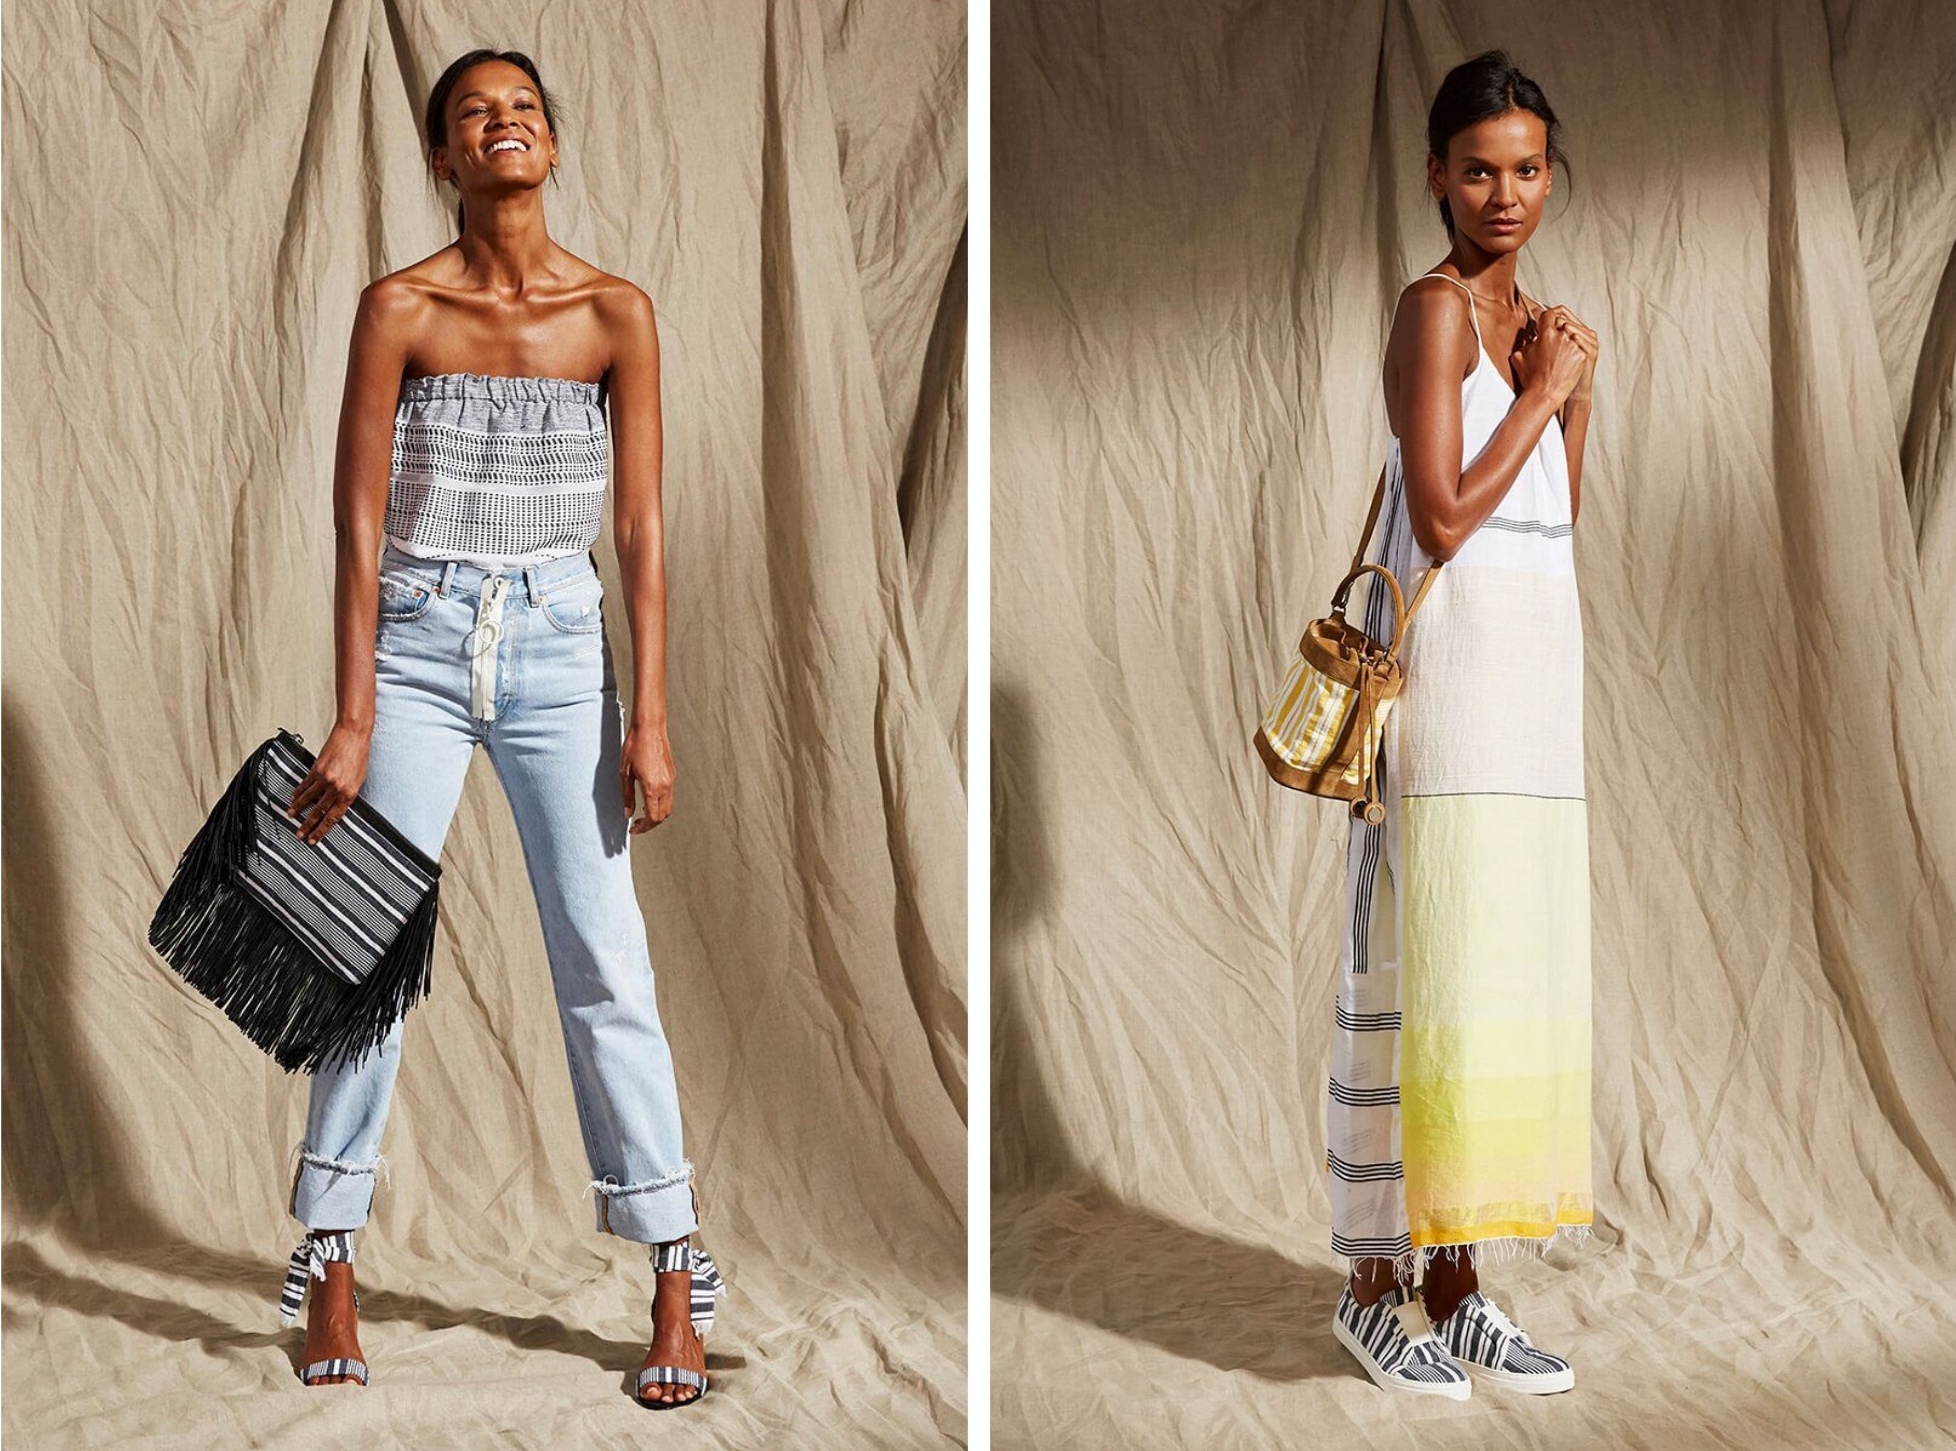 14 Africa-Inspired Designers Who Shake Up The Sustainable Fashion World